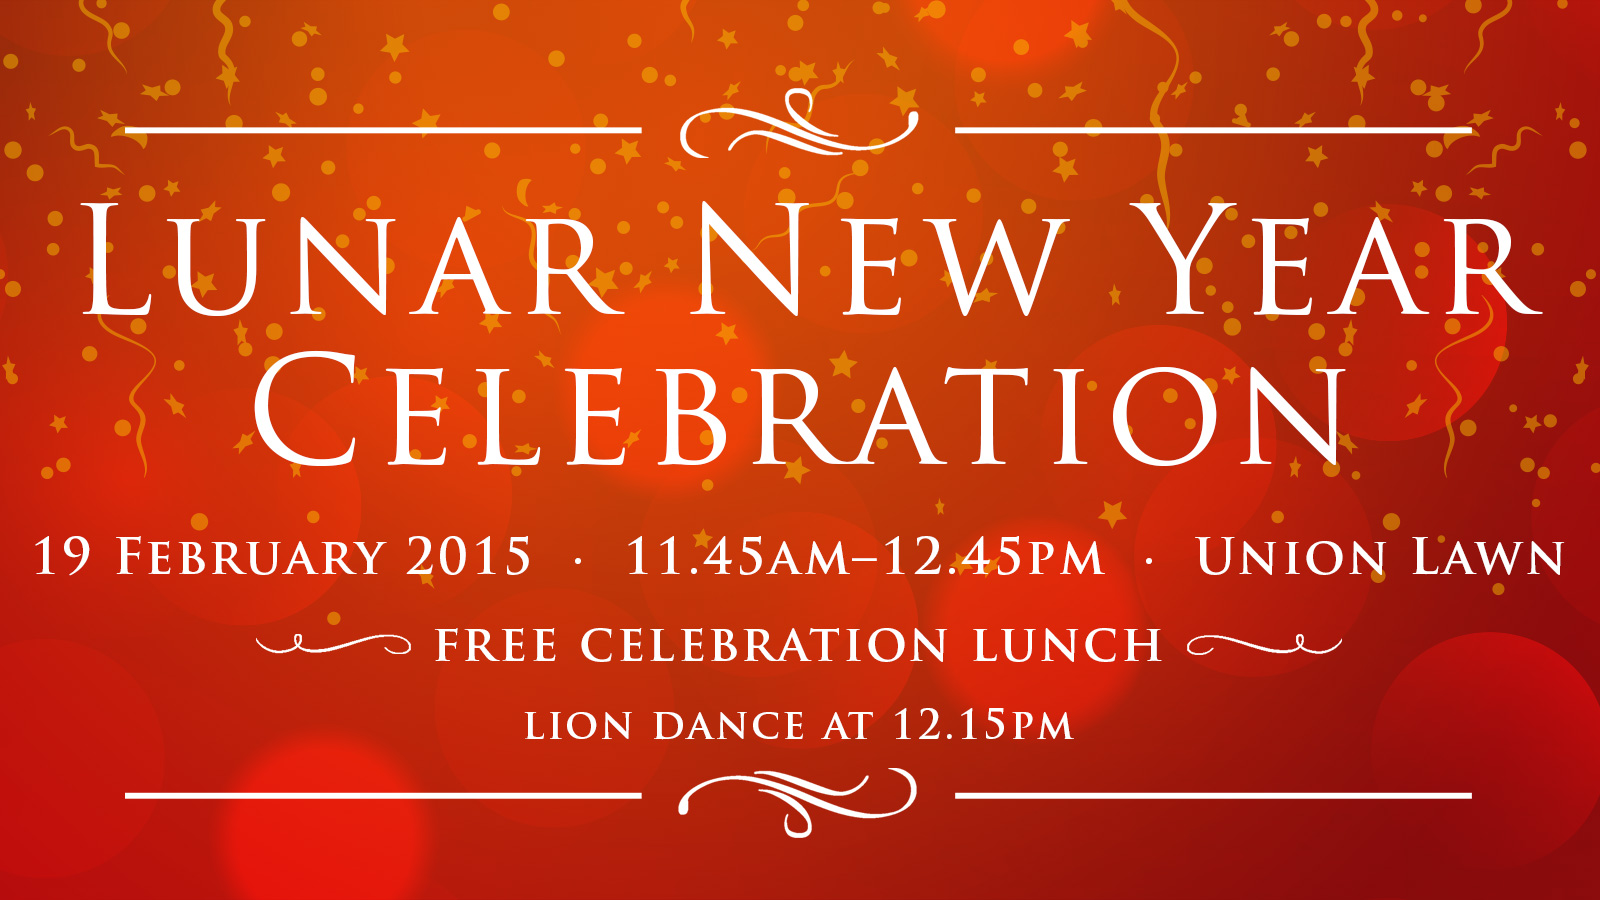 Lunar new year celebration. 19 February 2015. 11.45AM-12.45PM. Union Lawn. Free celebration lunch. Lion dance at 12.15PM